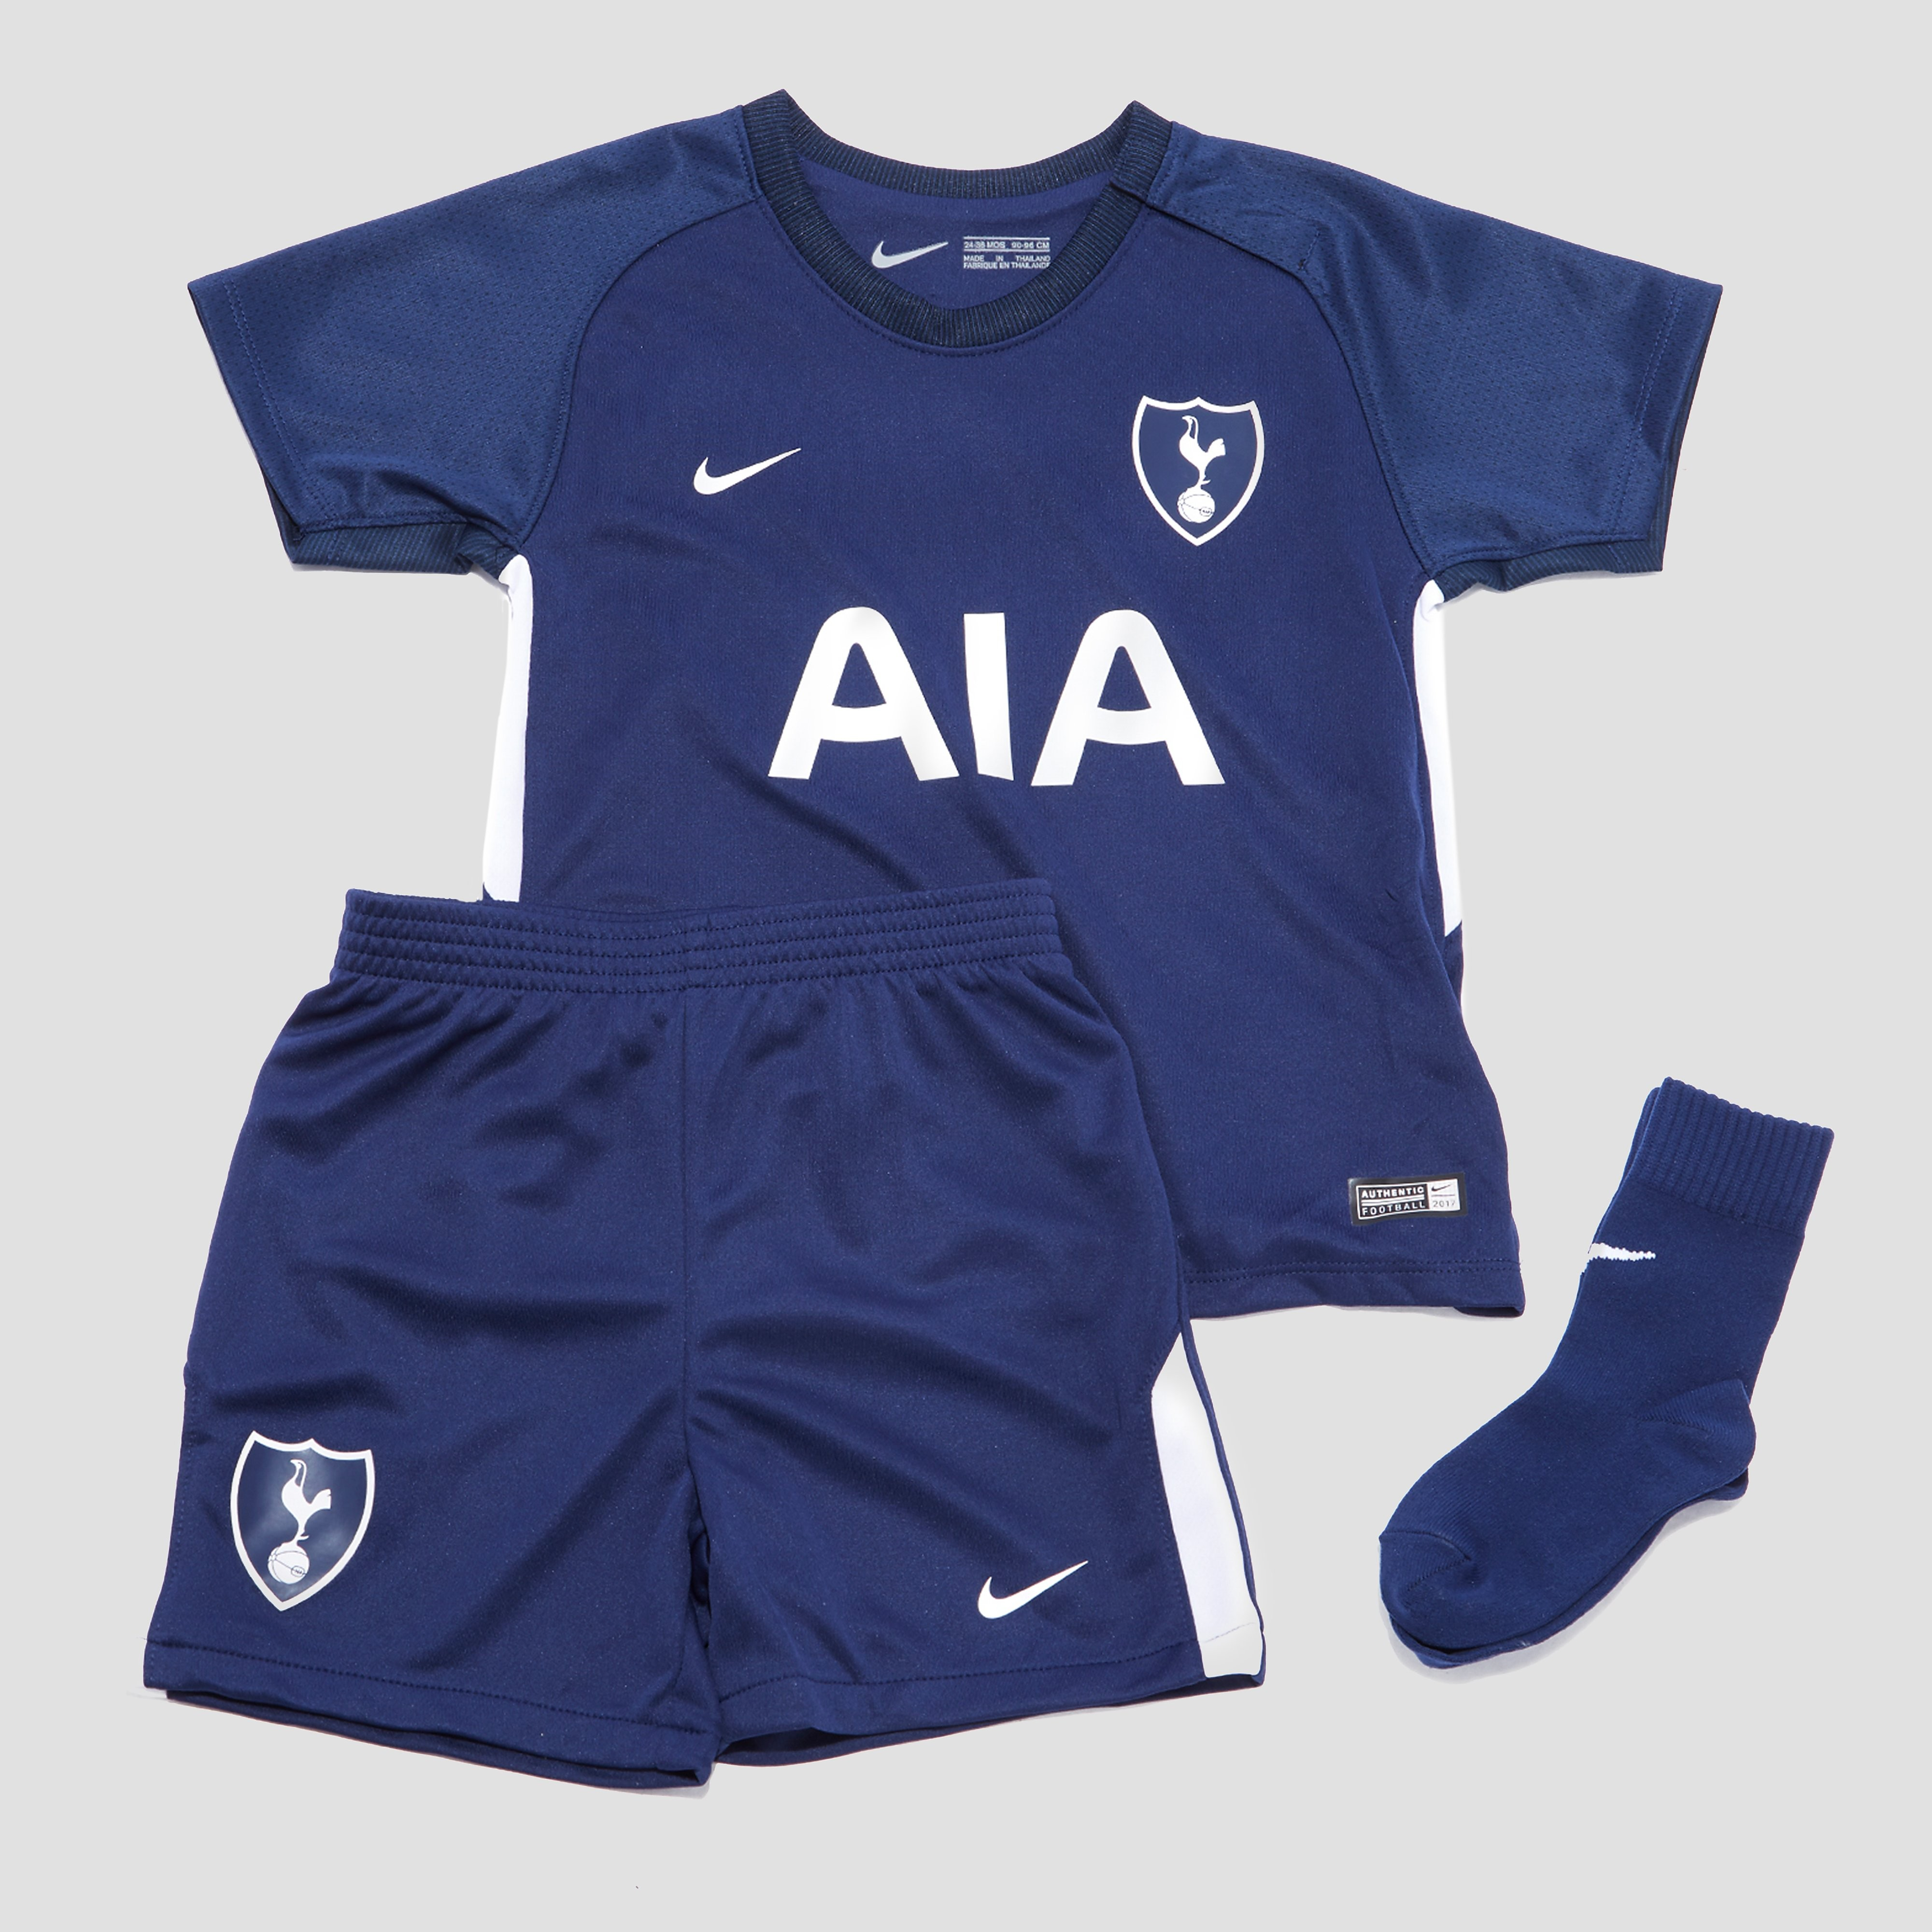 Nike Tottenham Hotspur 2017/18 Away Kit Infant